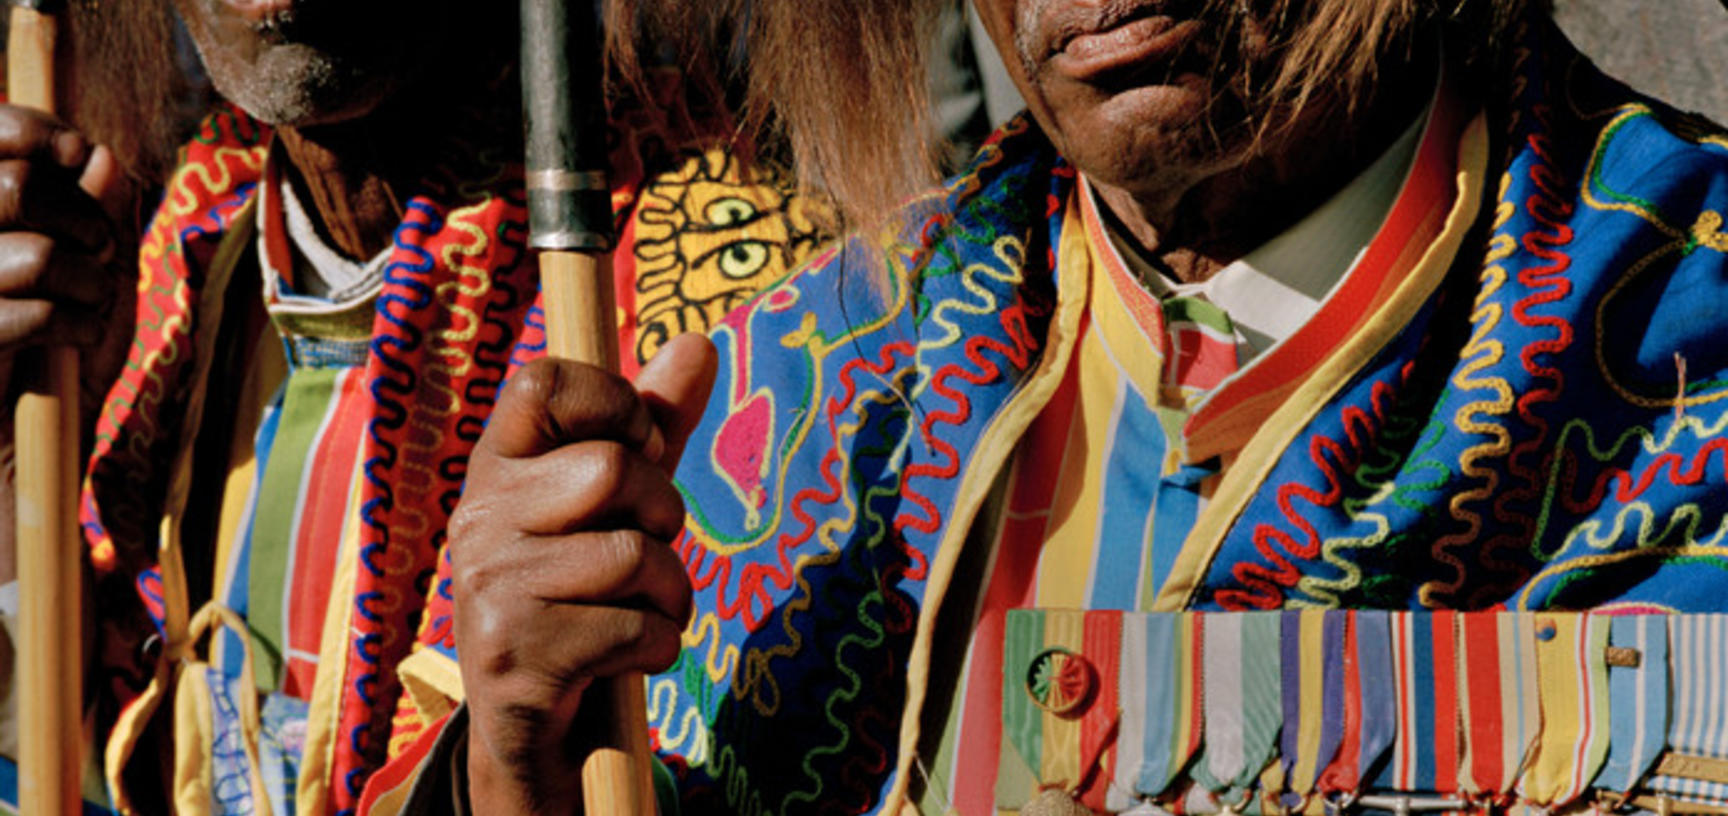 Veterans wearing lion's mane headdresses and military service medals forming a guard of honour for the Emperor's coffin on its way to Trinity Cathedral. Addis Ababa, Ethiopia. Photograph by Peter Marlow. 2000.